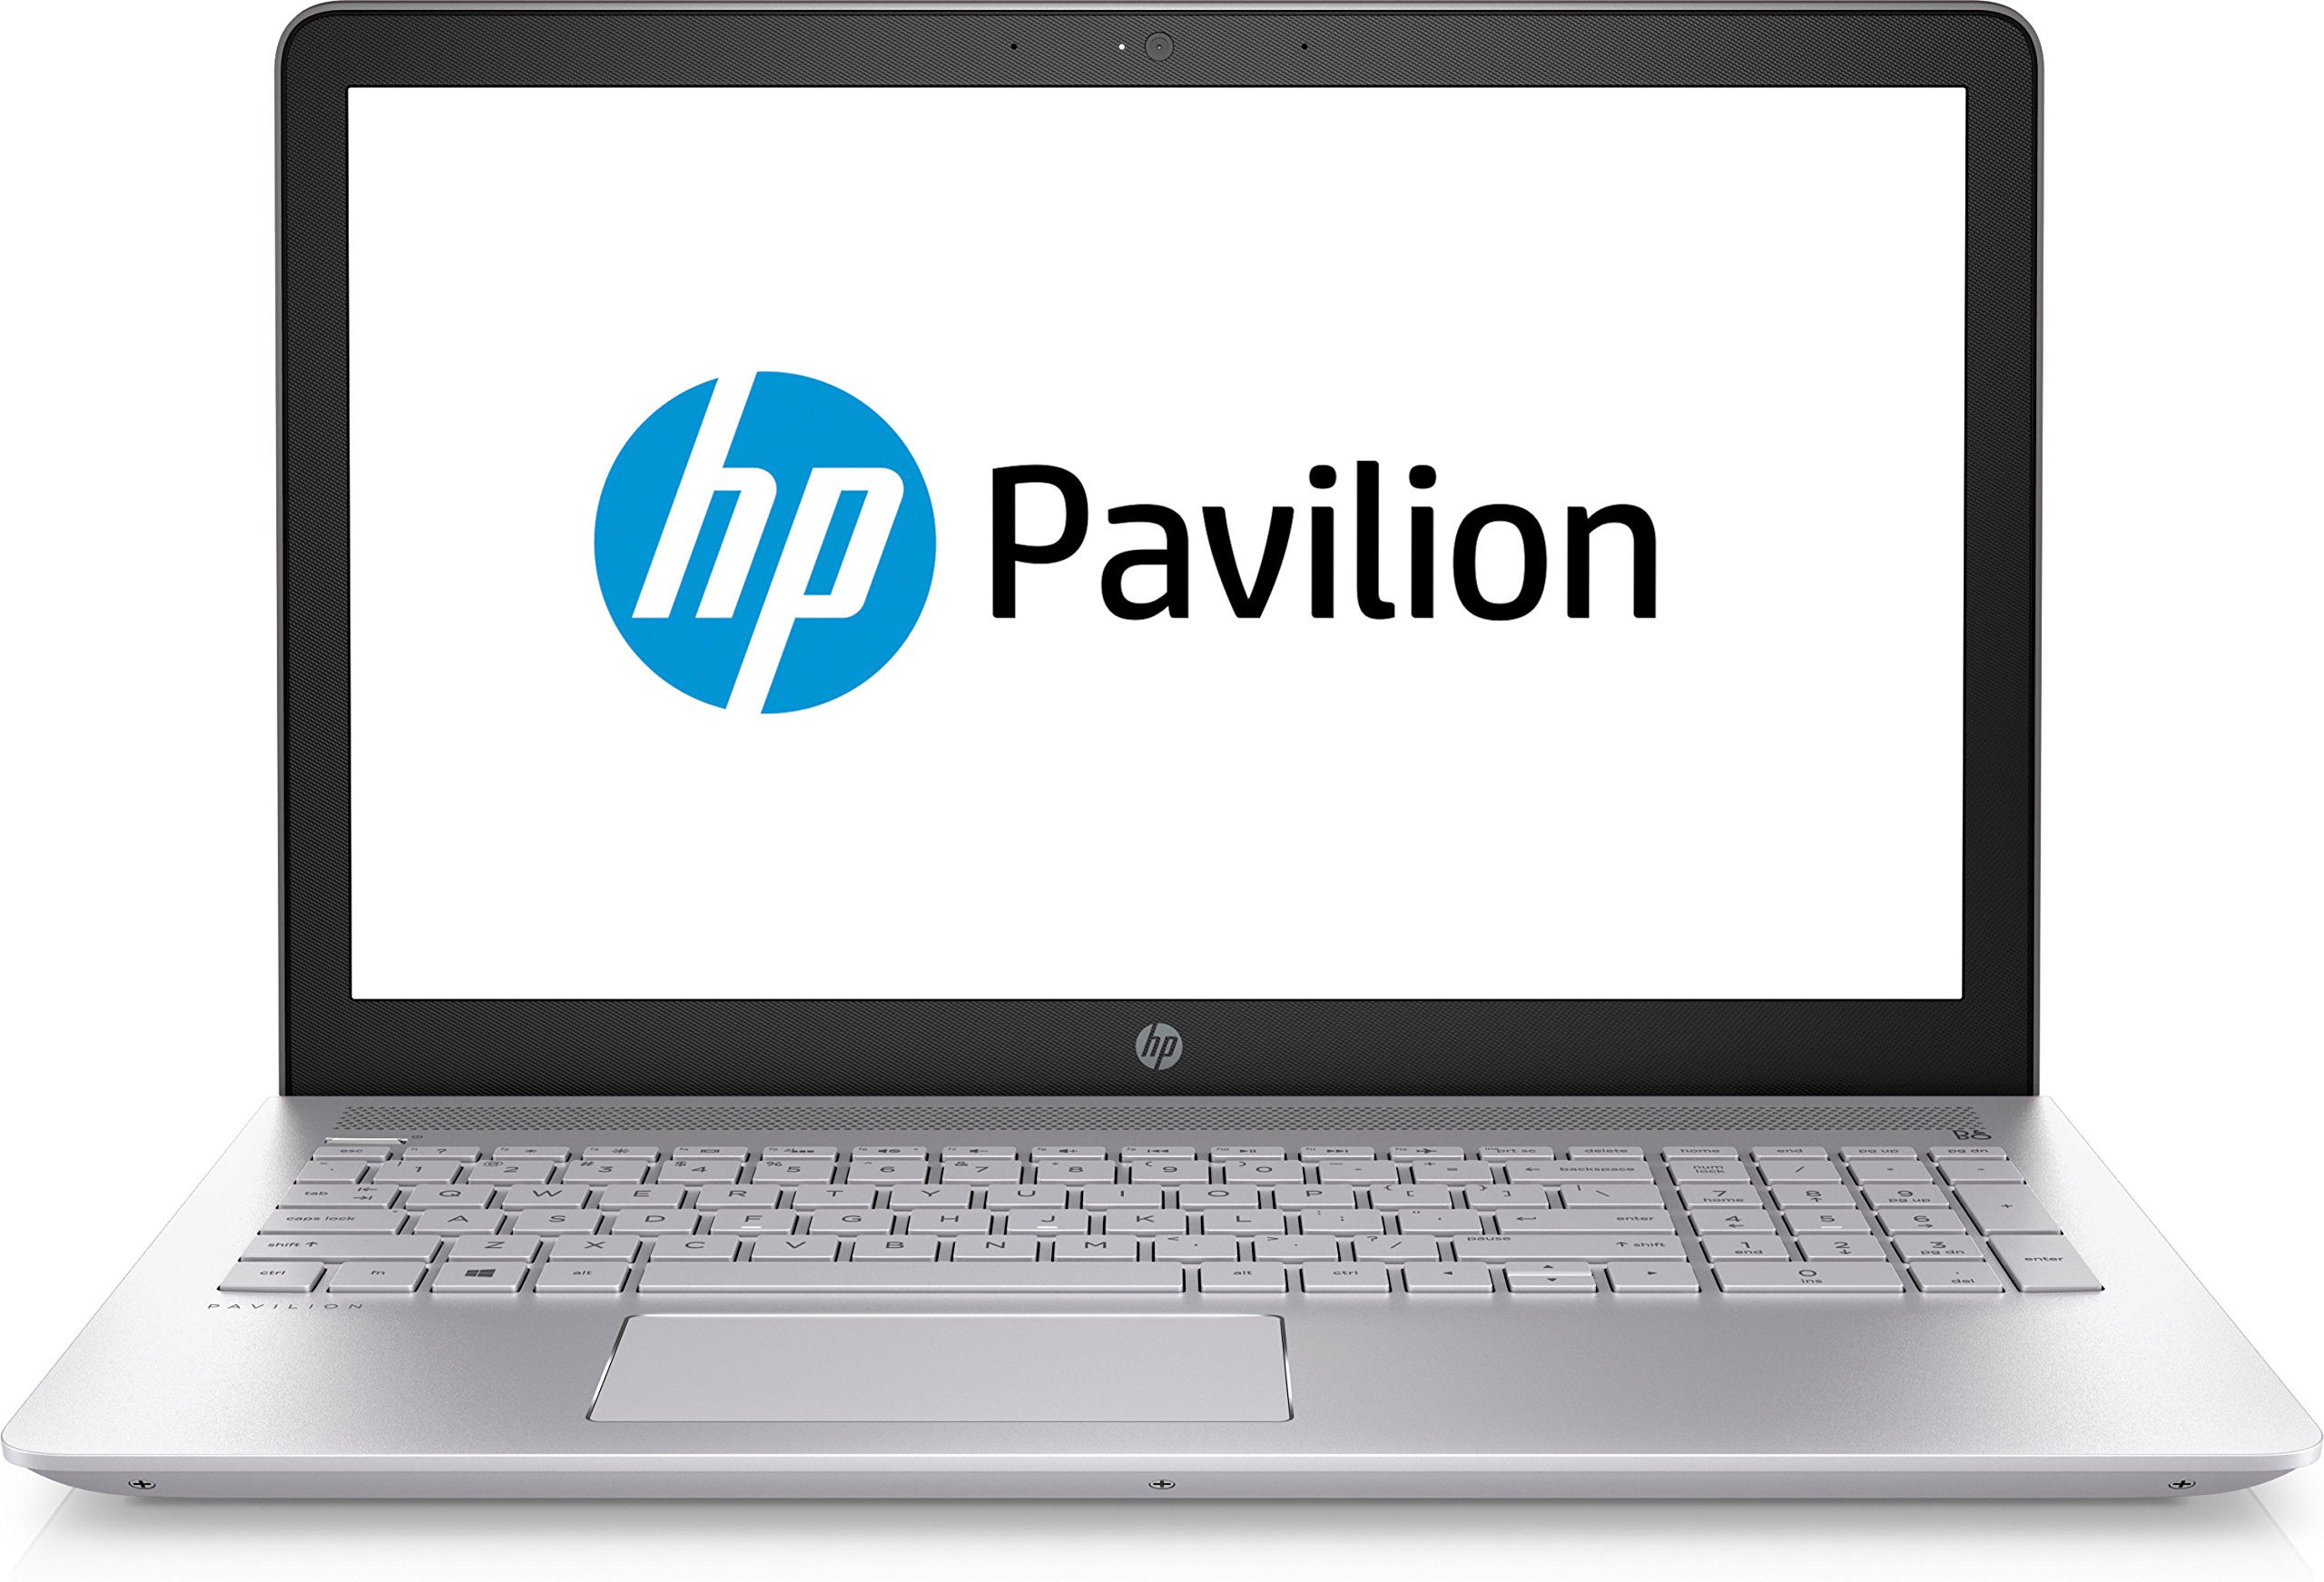 2017 HP Pavilion Business Flagship Laptop PC 15.6'' Full HD IPS WLED-backlit Display Intel i7-7500U Processor 12GB DDR4 Memory 1TB HDD Backlit-Keyboard Bluetooth Webcam B&O Audio Windows 10-Gray by HP (Image #1)